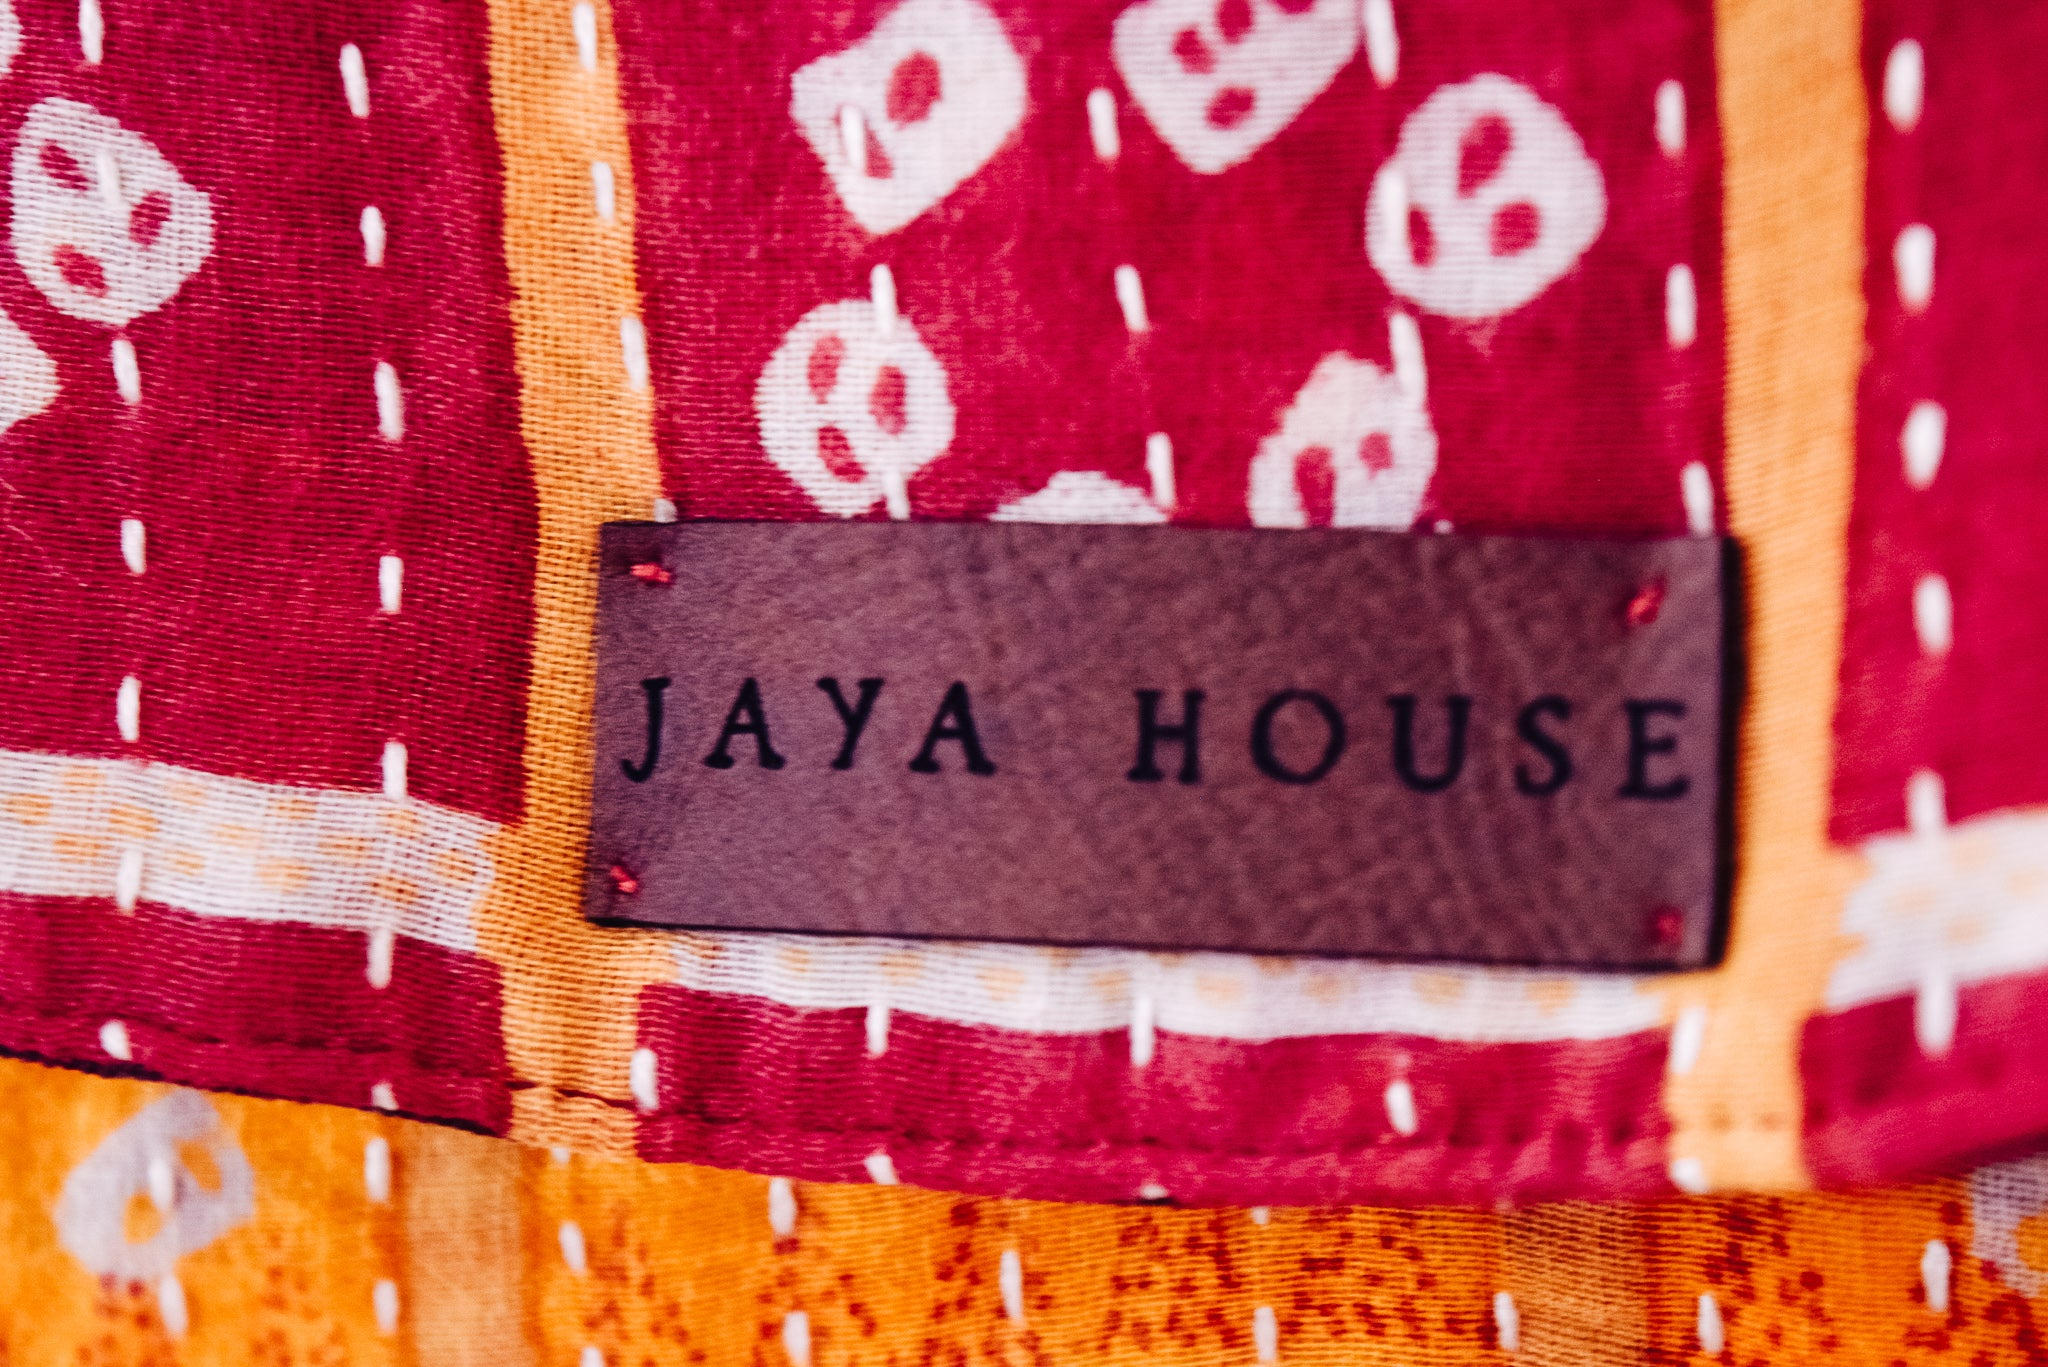 Asha Saddle Bag - The Jaya House